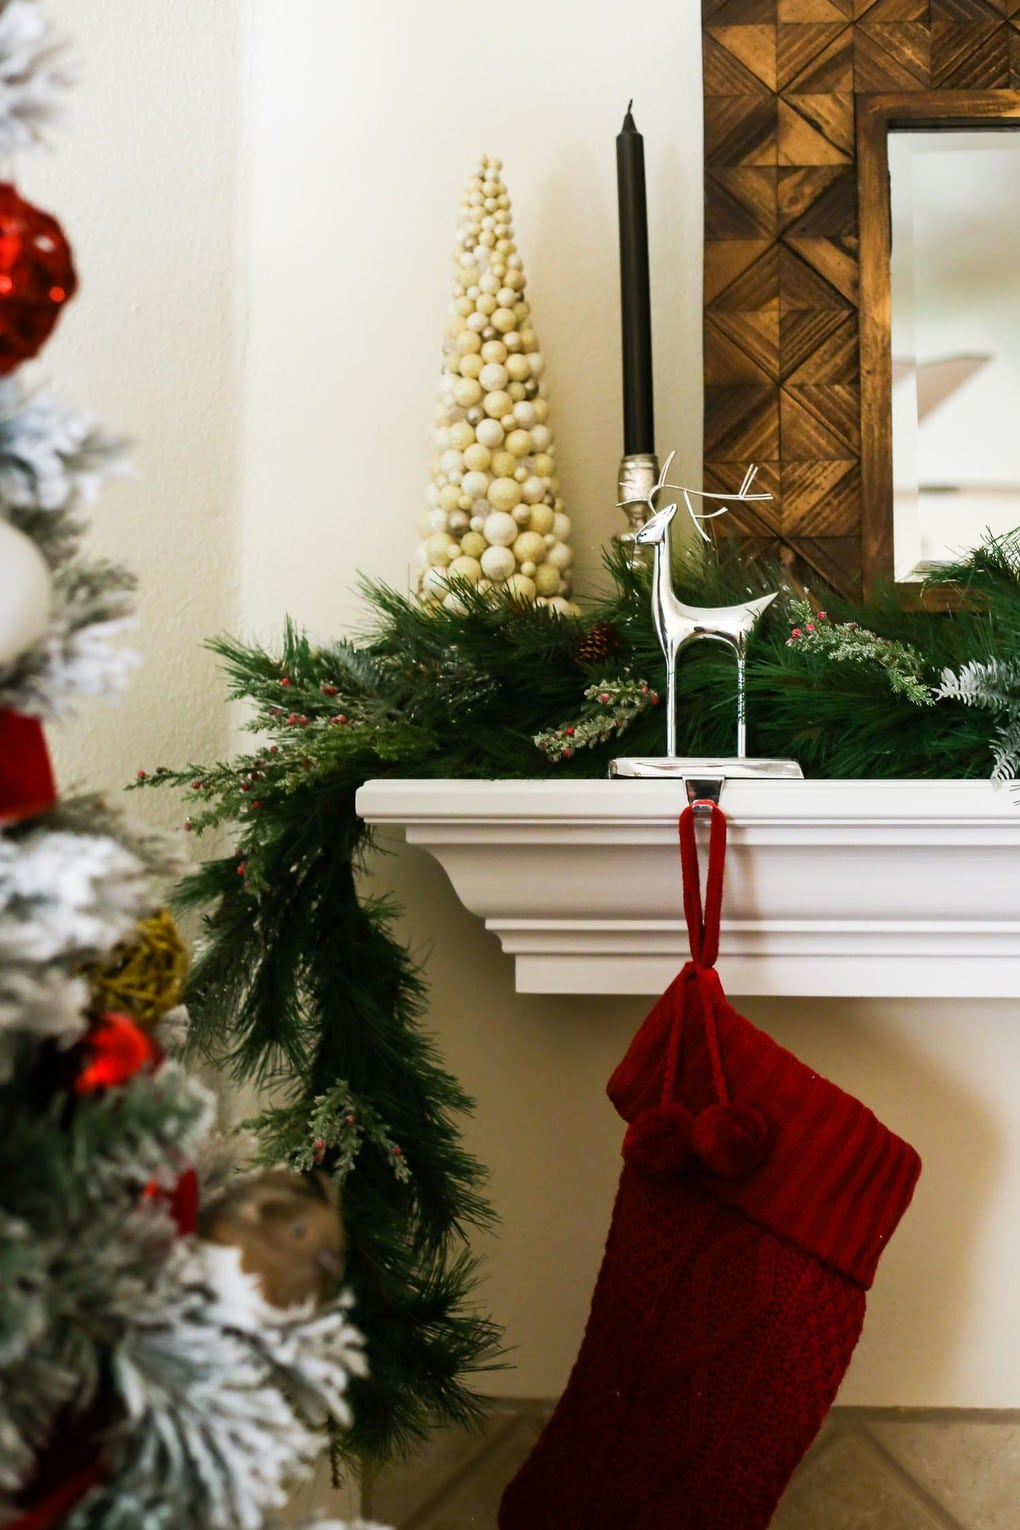 How to make an easy DIY Christmas garland